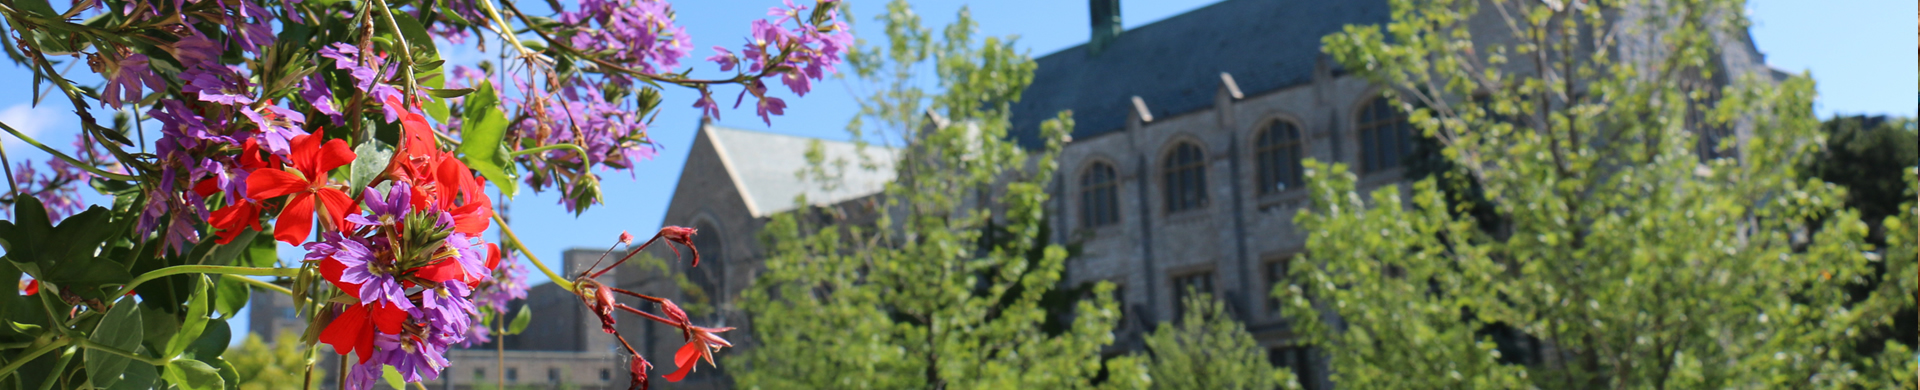 Changes to your Degree Program, Plan or Certificate at Queen's University Arts and Science